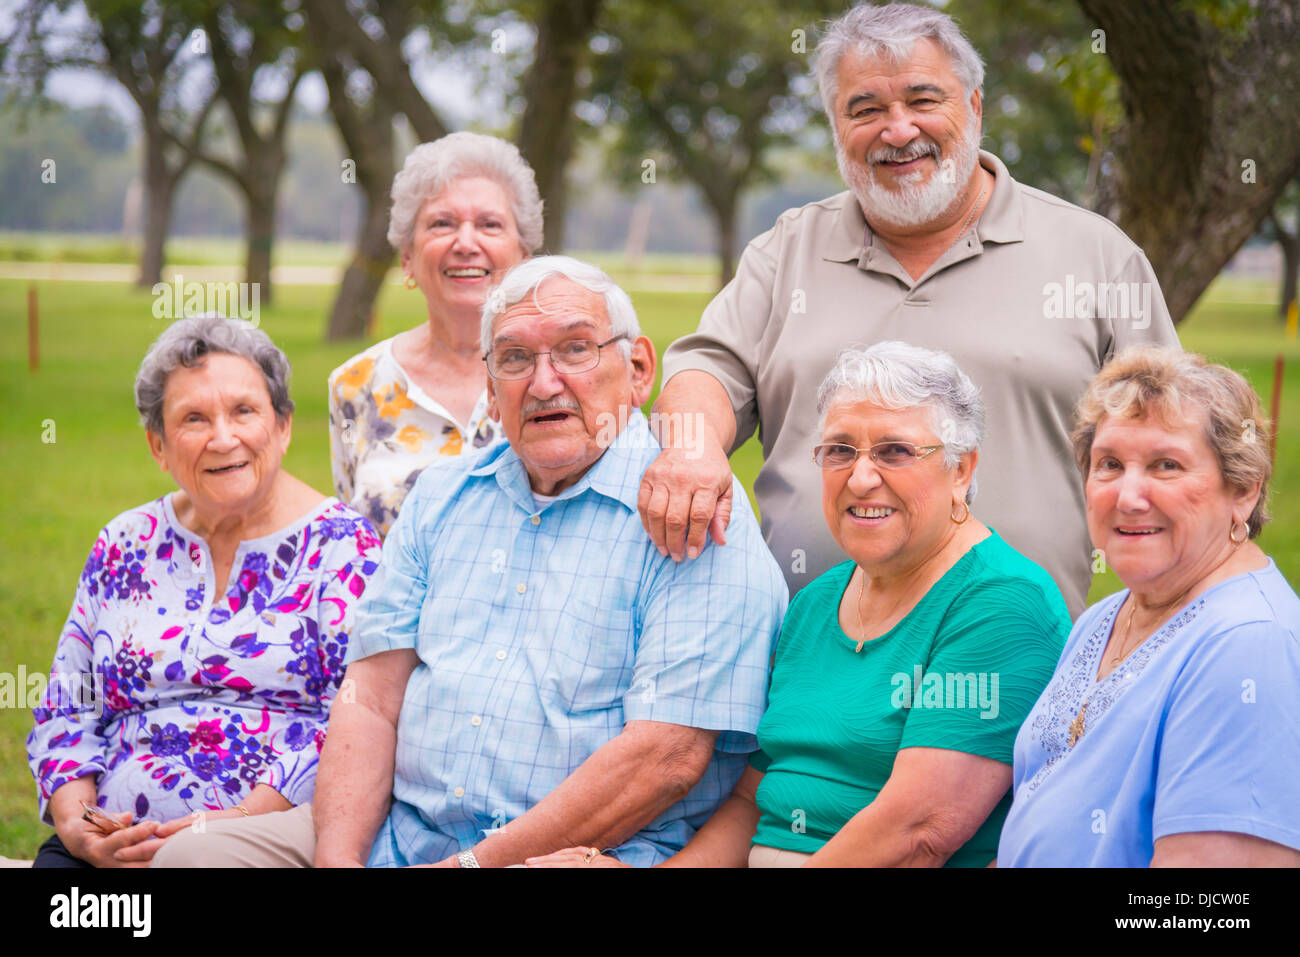 USA, Texas, Group foto of senior citizens at reunion meeting - Stock Image